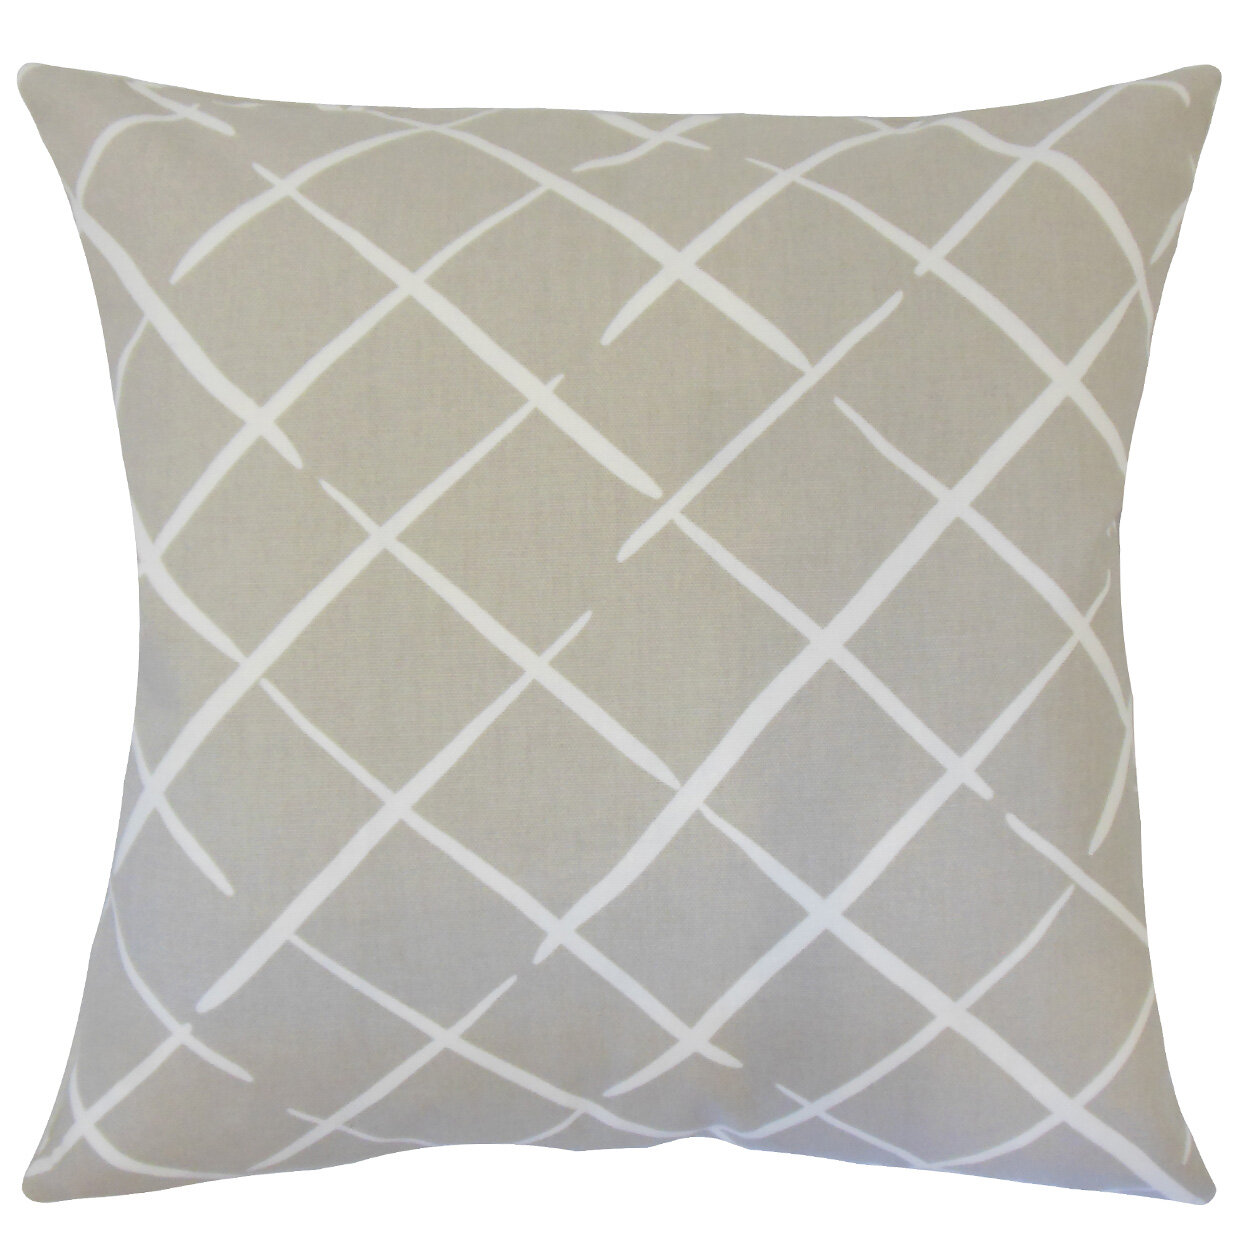 Orren Ellis Kistner Geometric Down Filled 100% Cotton Throw Pillow Wayfair